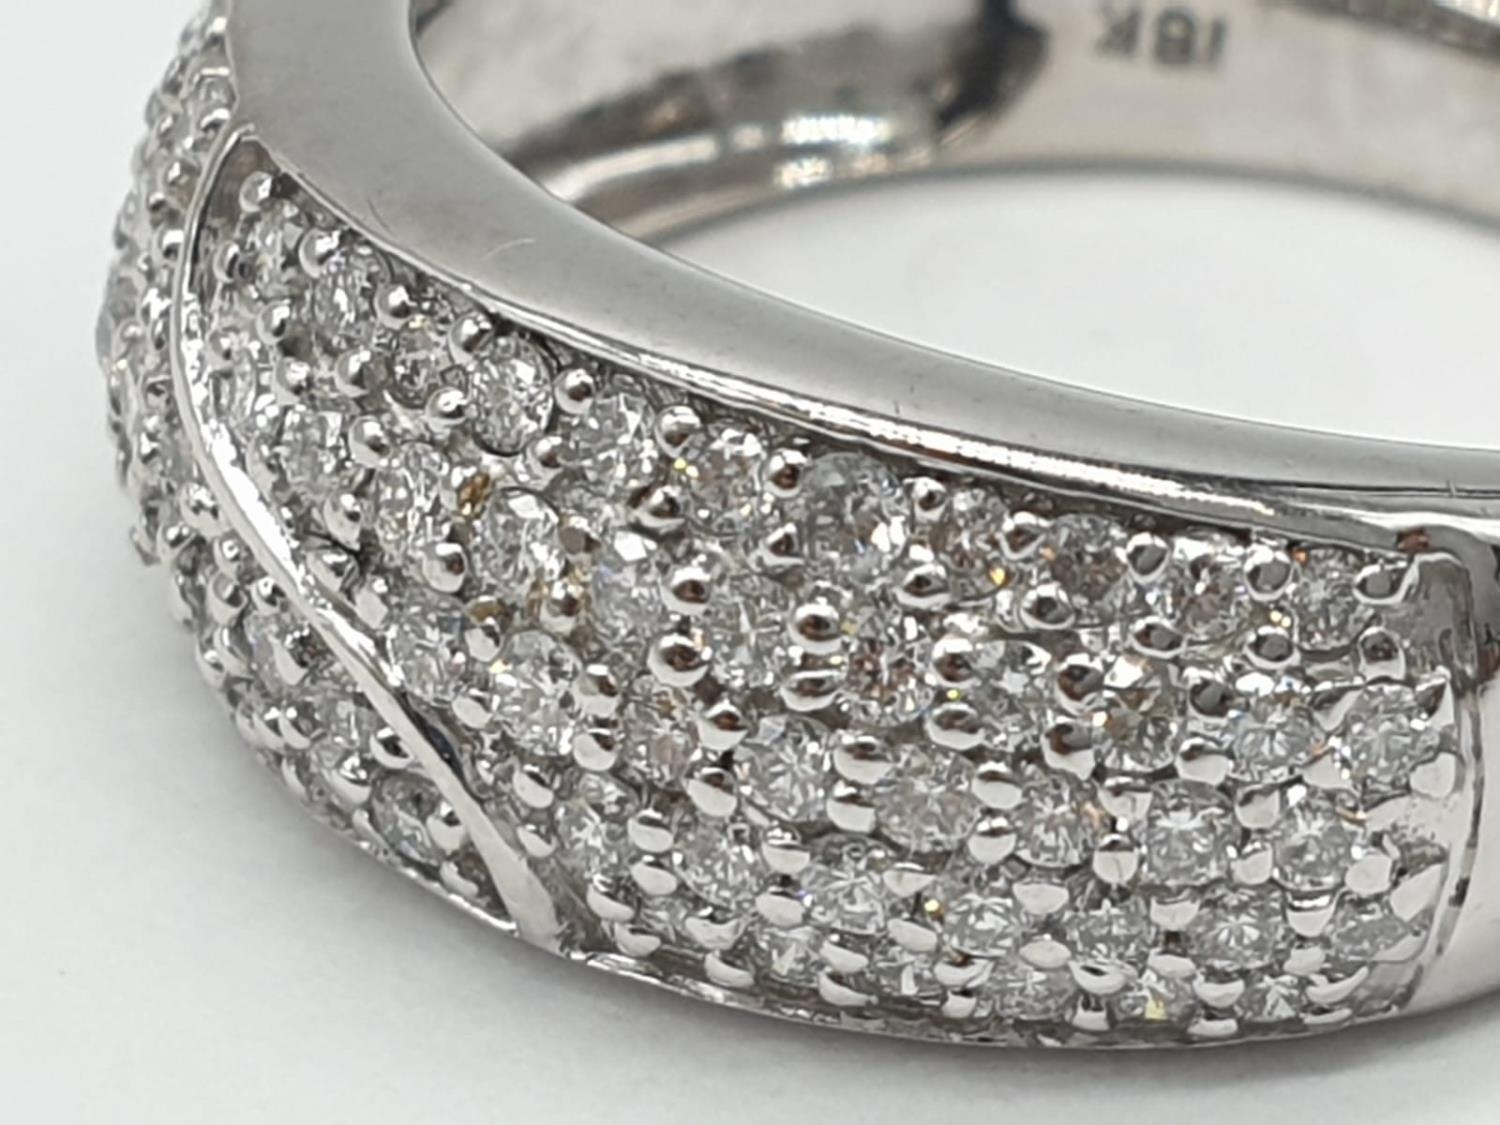 18ct diamond encrusted stylist ring. Weighs 5.6g and is a size O. - Image 2 of 7